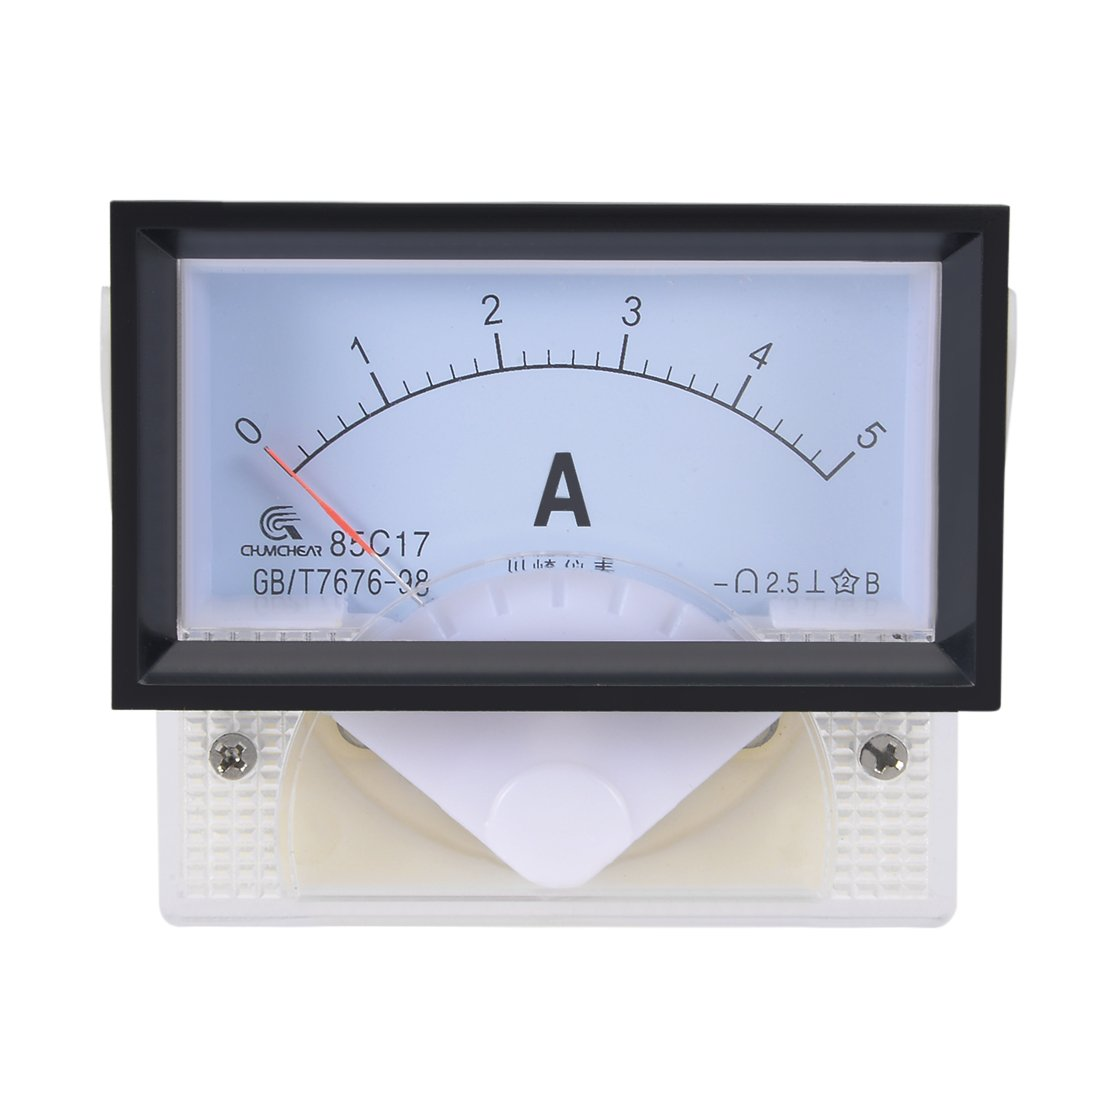 Uxcell Digital Dc Voltmeter Ammeter 0 999v 10a Measuring Current Wiring Tester With 5 Wires